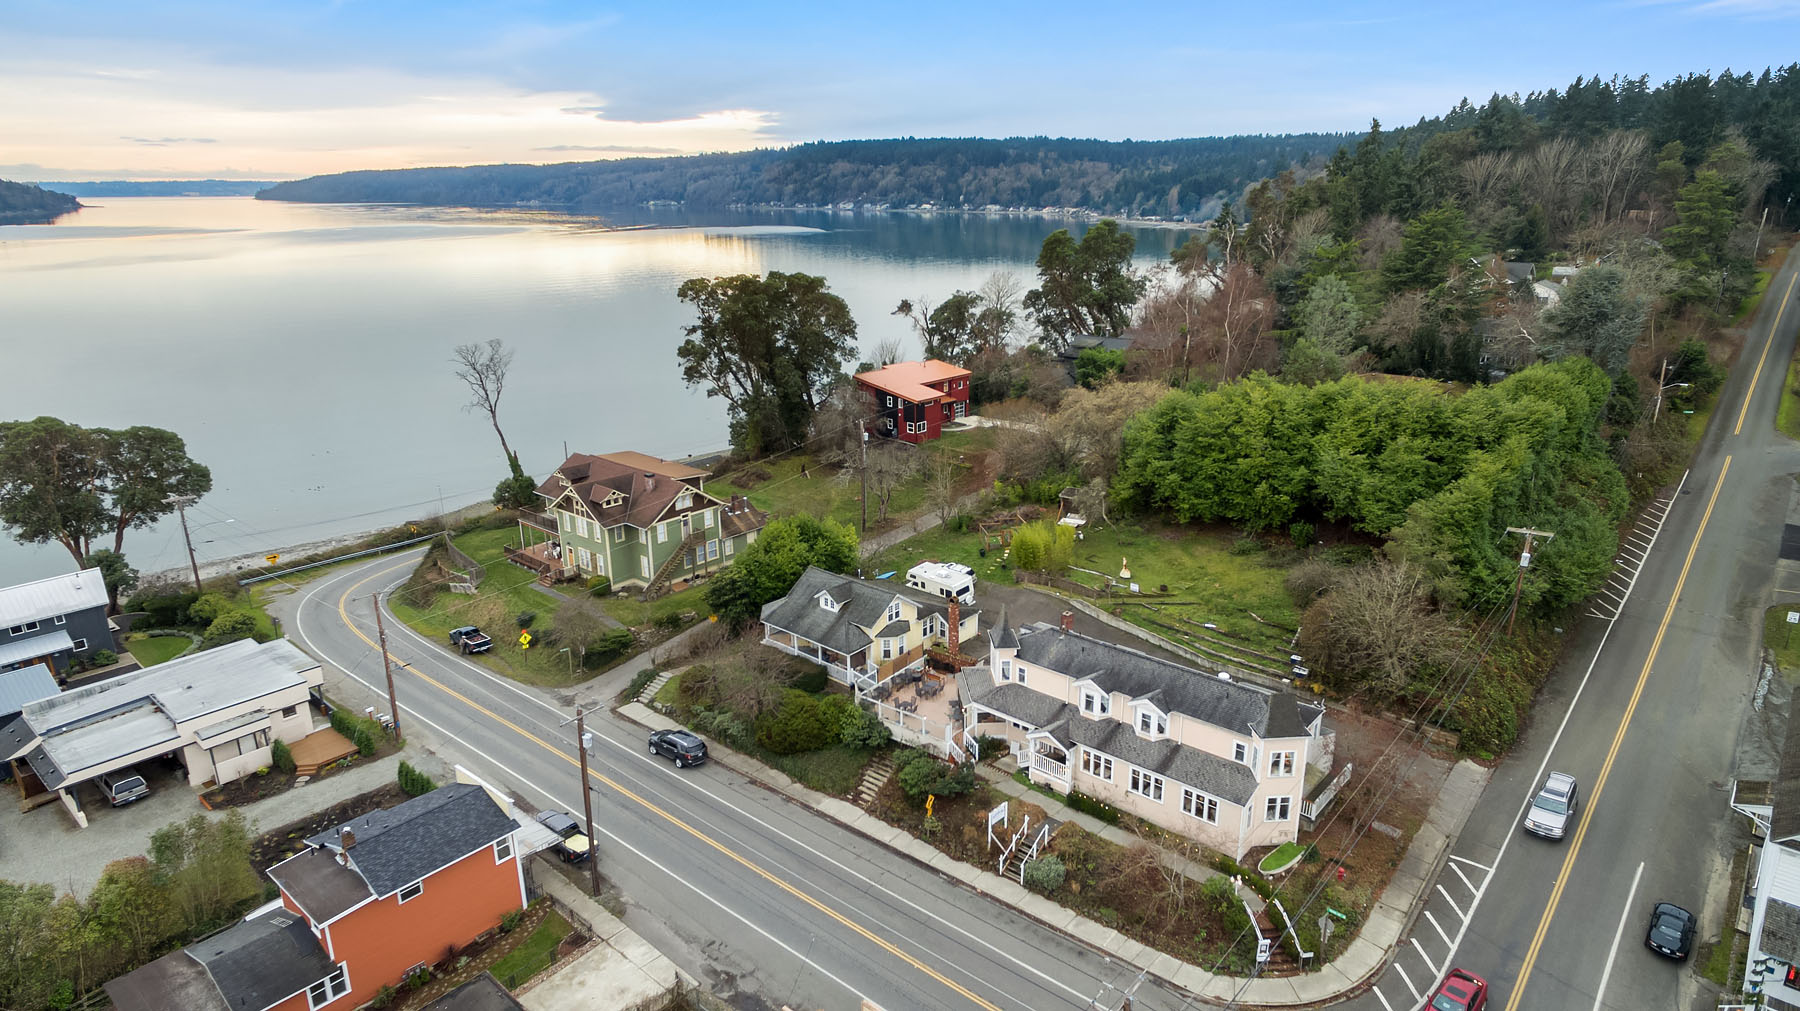 Commercial for Sale at The Burton Inn 24007 Vashon Hwy SW Vashon, Washington 98070 United States